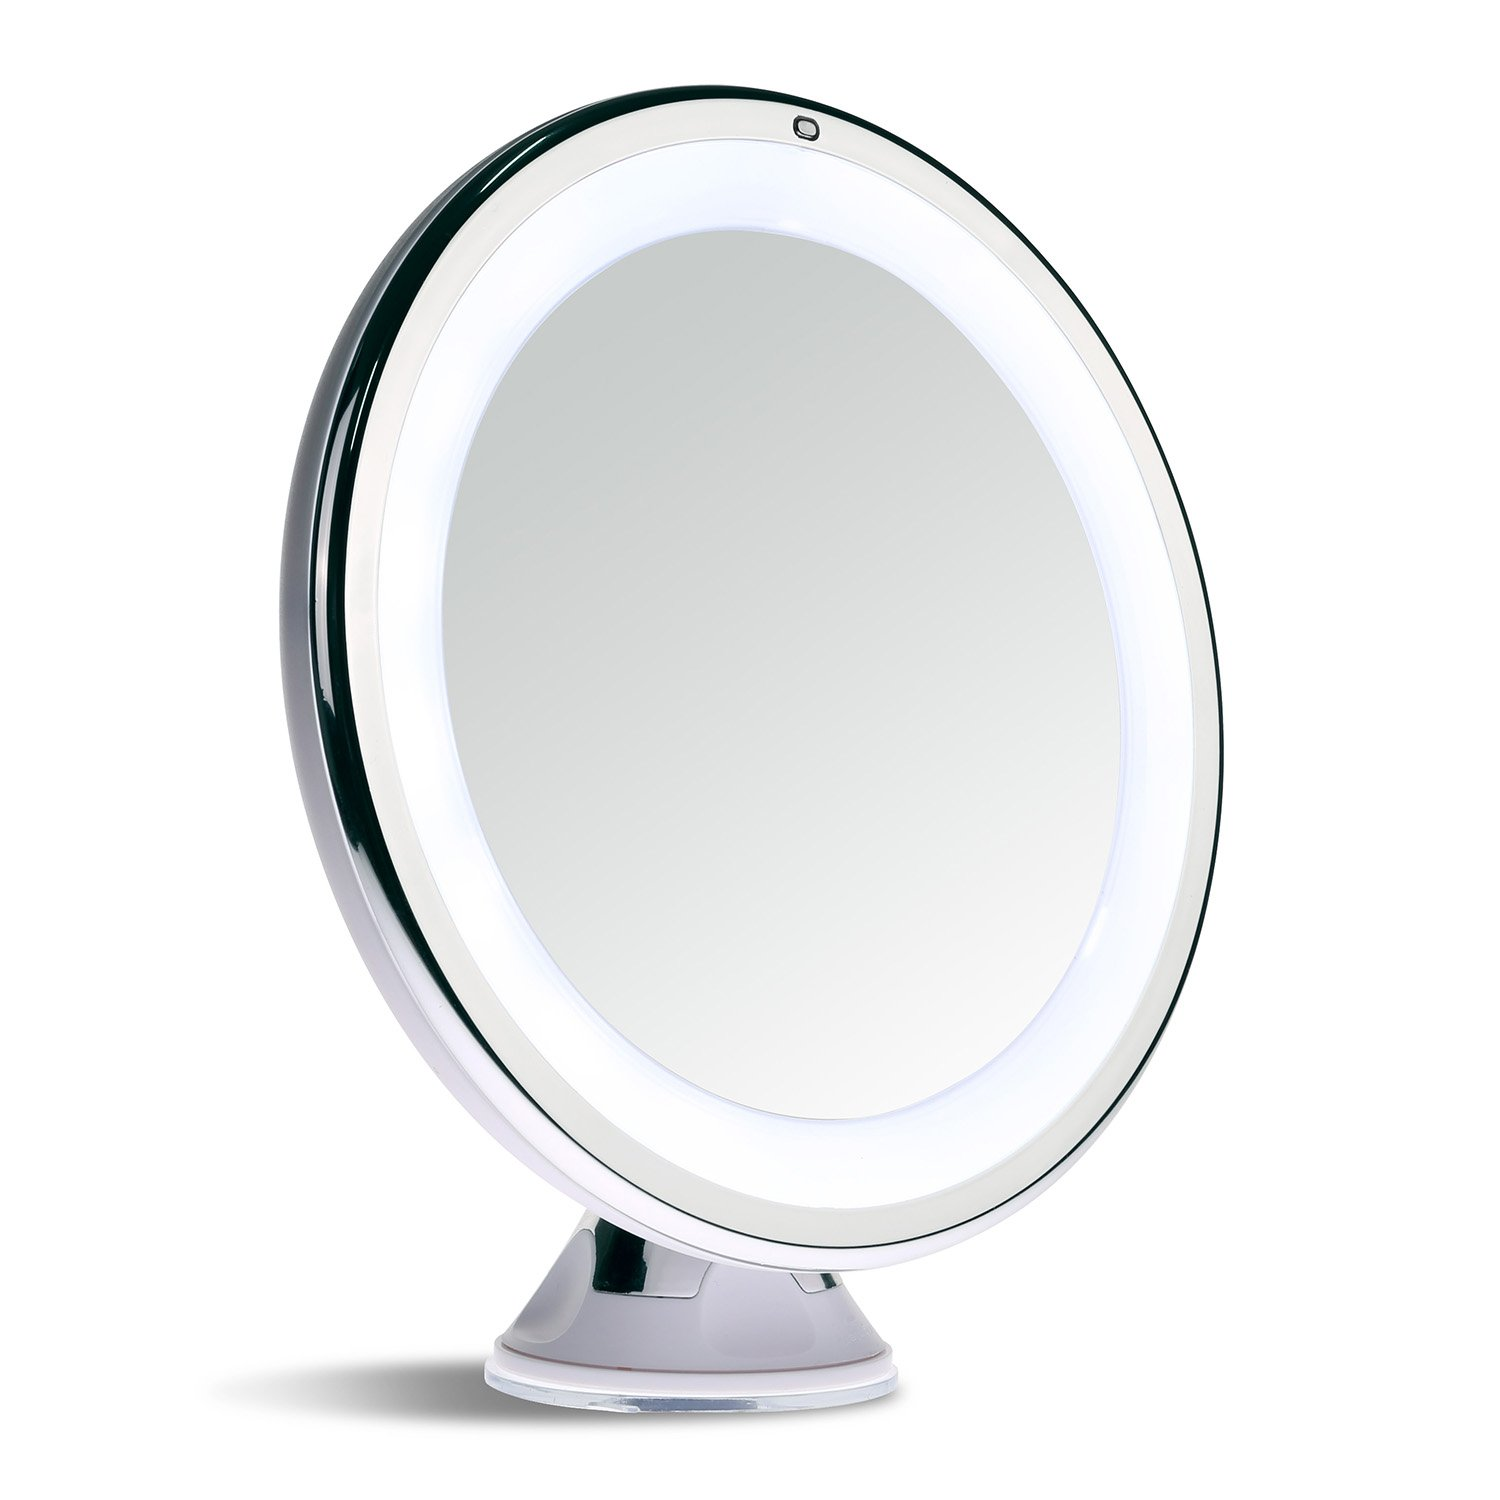 Sanheshun Makeup Mirror 10x Magnifying Lighted Compact